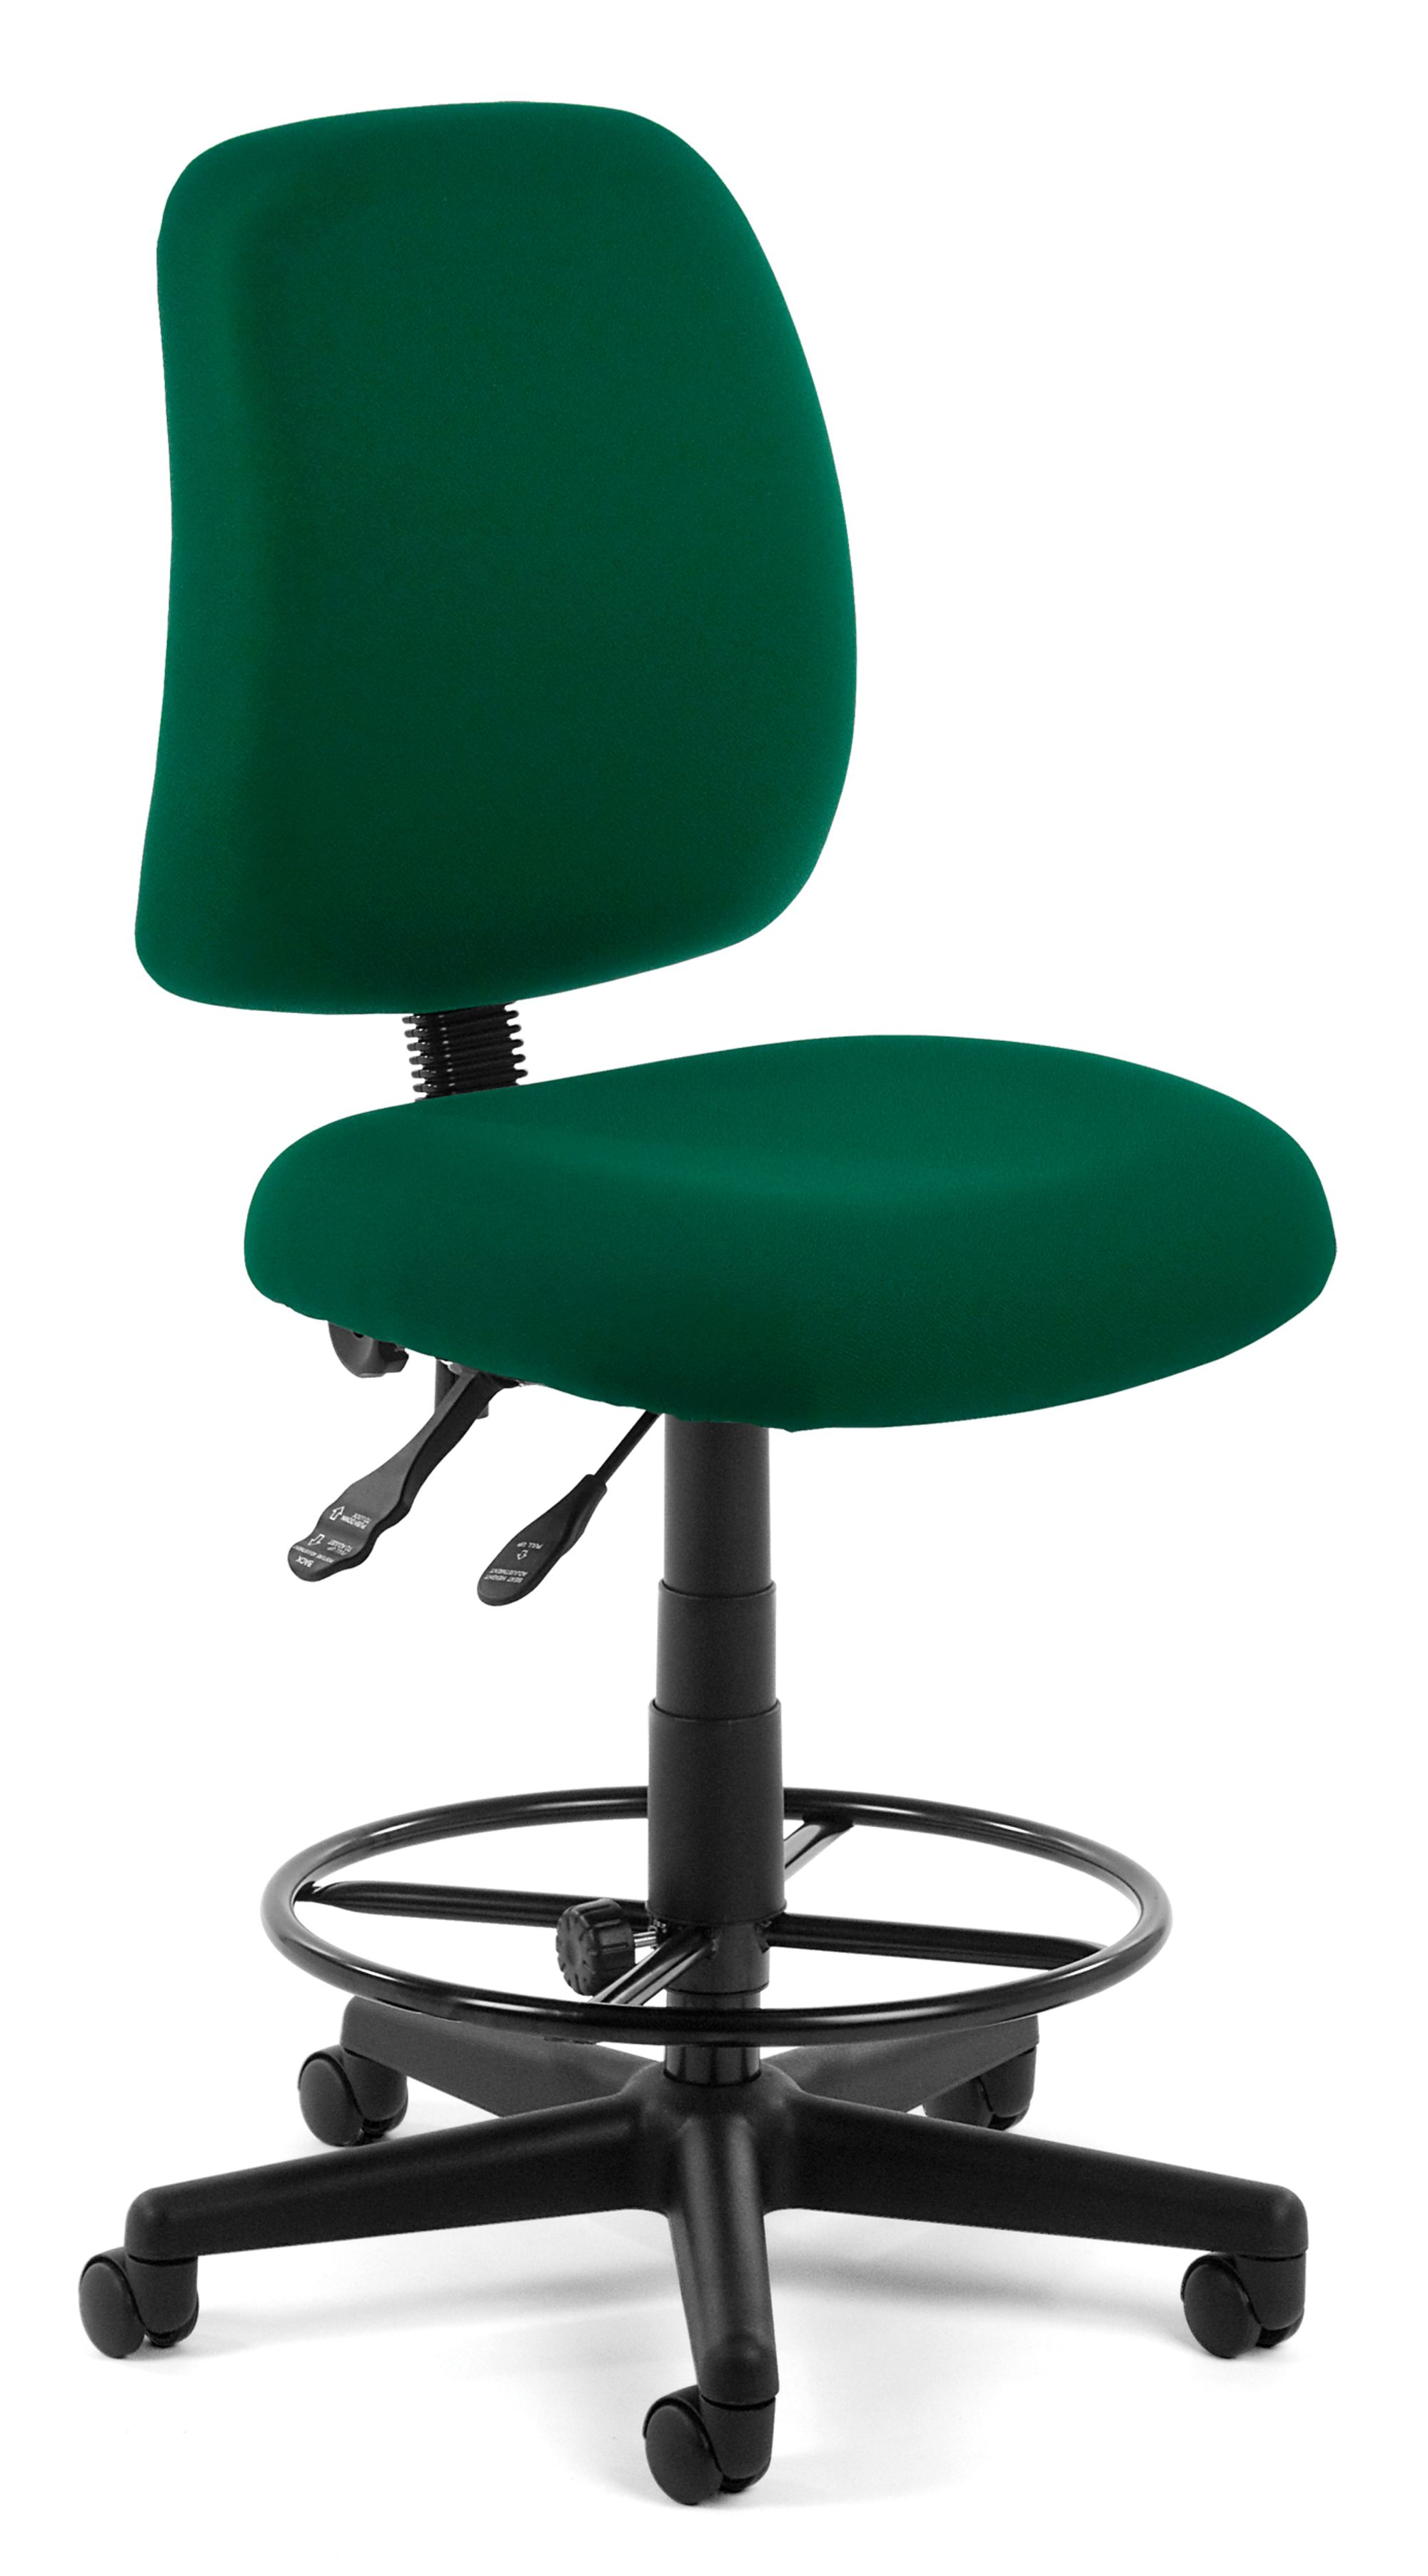 ofm posture task chair blue and a half series model 118 2 dk armless swivel